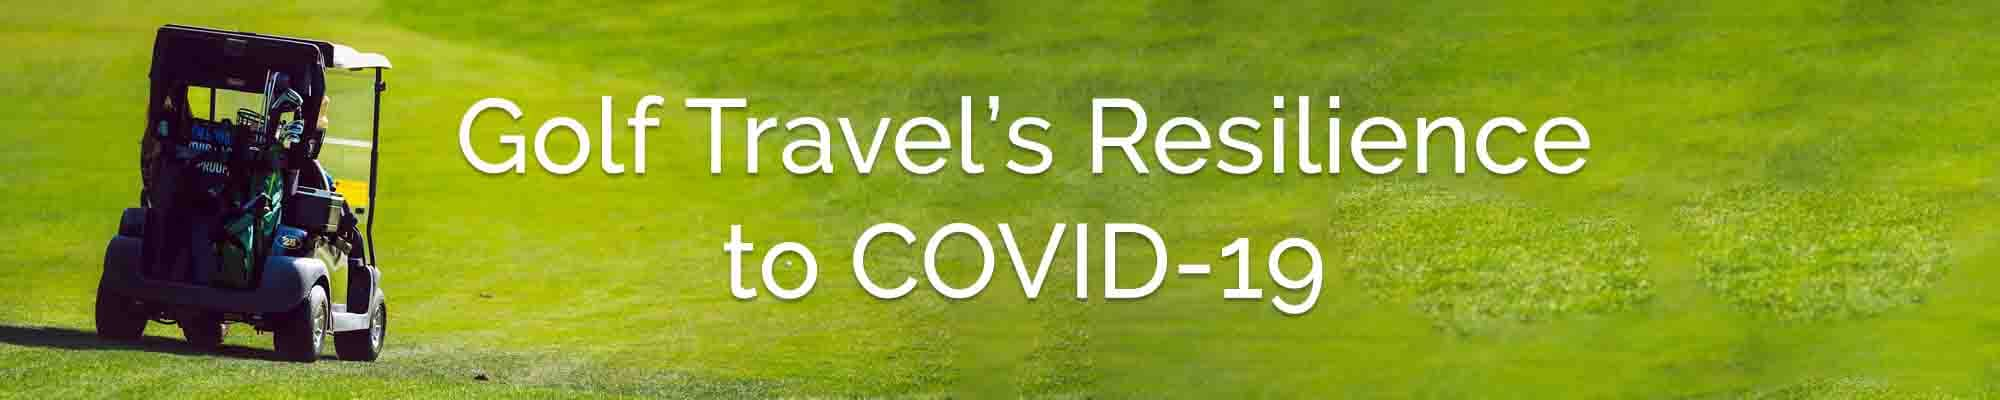 golf tourism during COVID-19